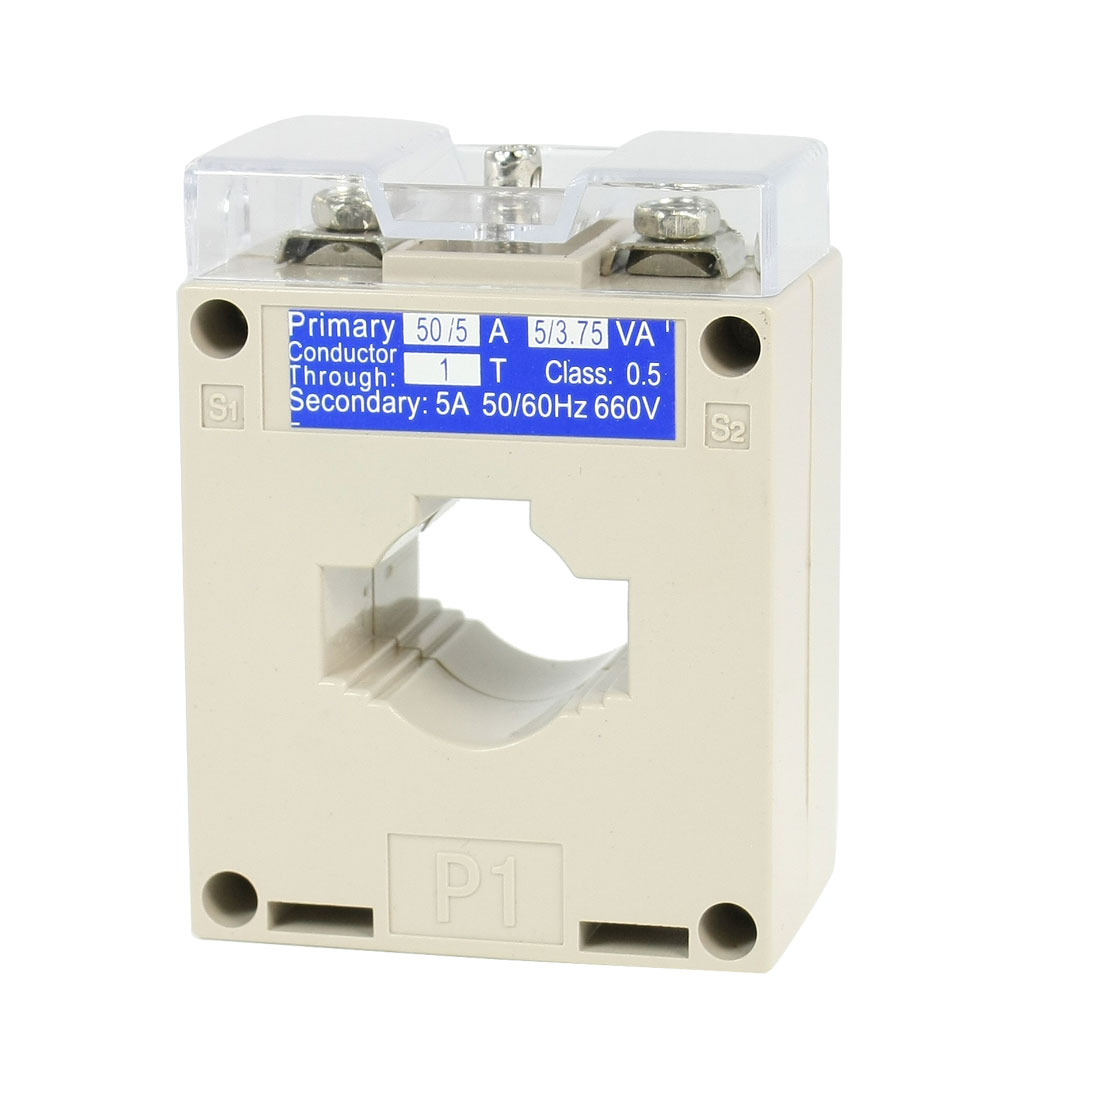 0.66KV 50/60Hz 0.5 Accuracy 50/5 Current Transformer BH-0.66CT